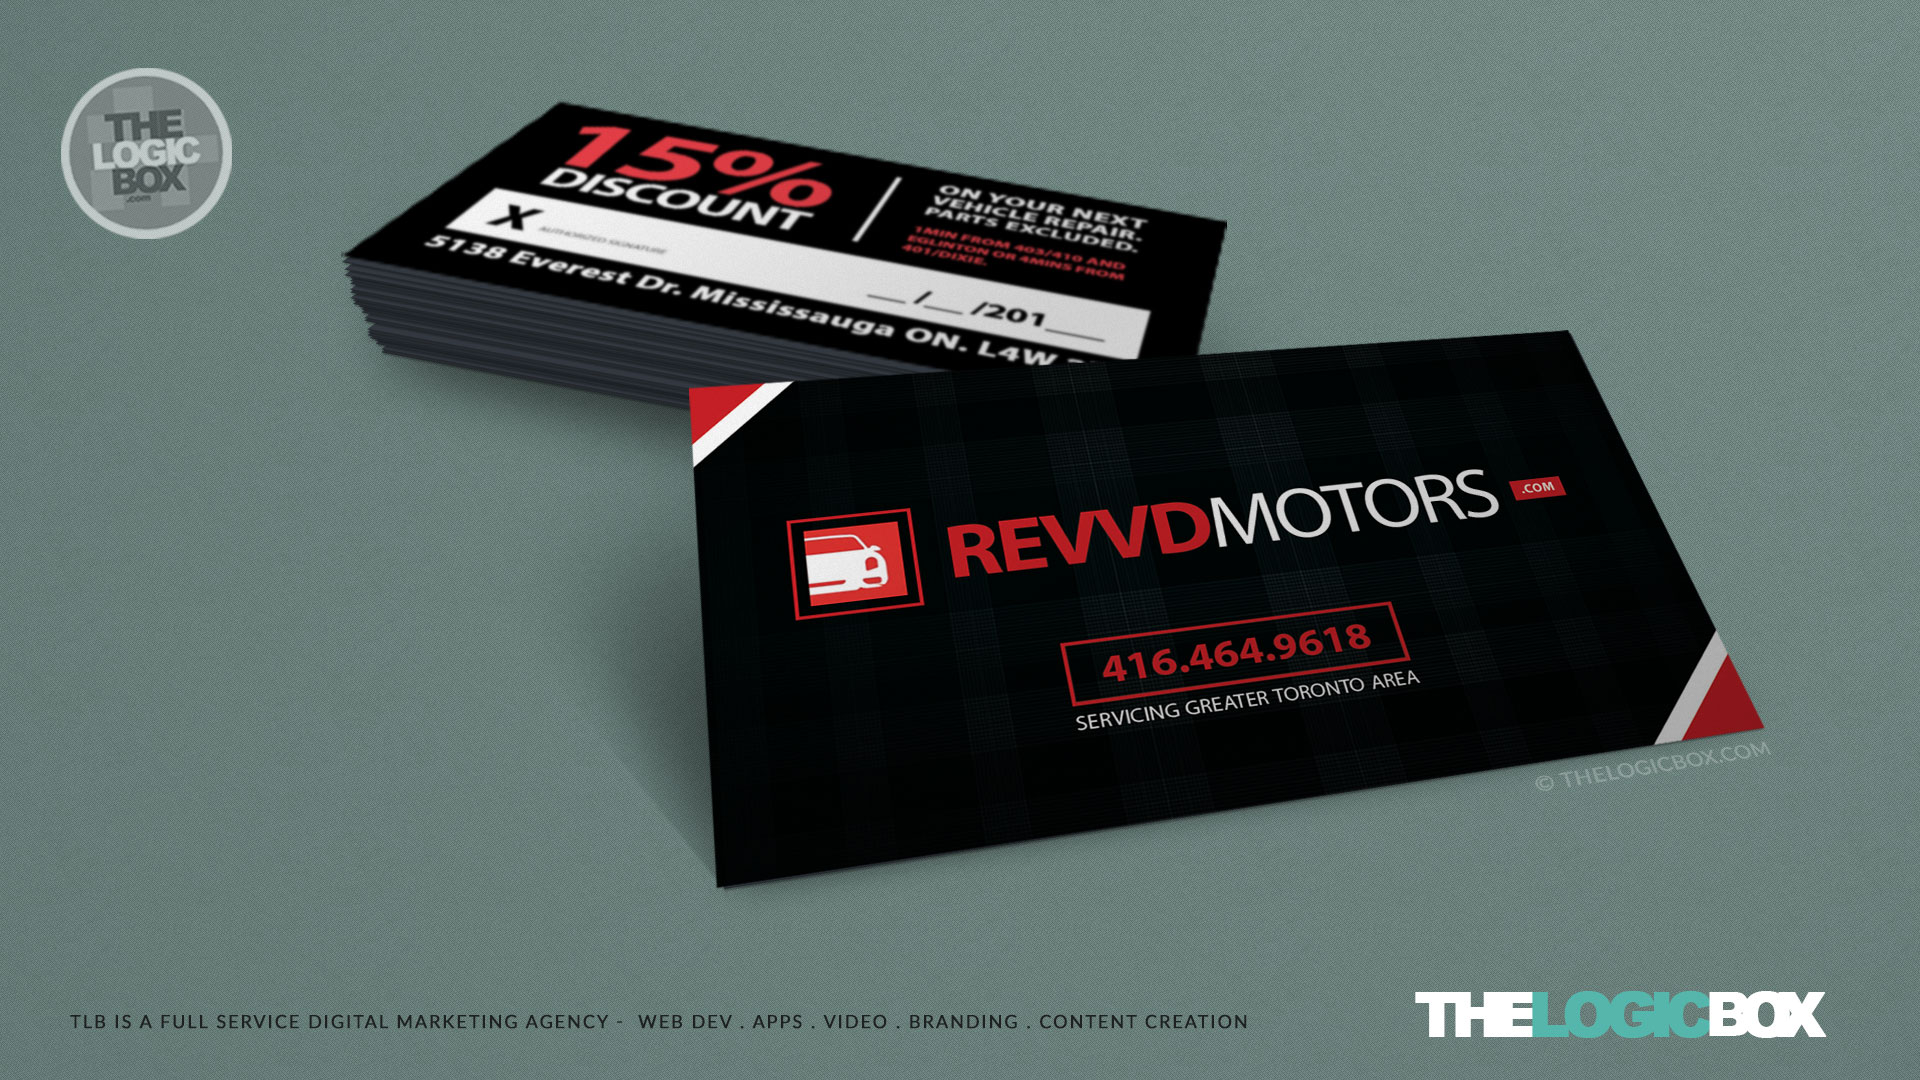 Logo business card design revvd motors auto repair web design mississauga oakville burlington brand advertising colourmoves